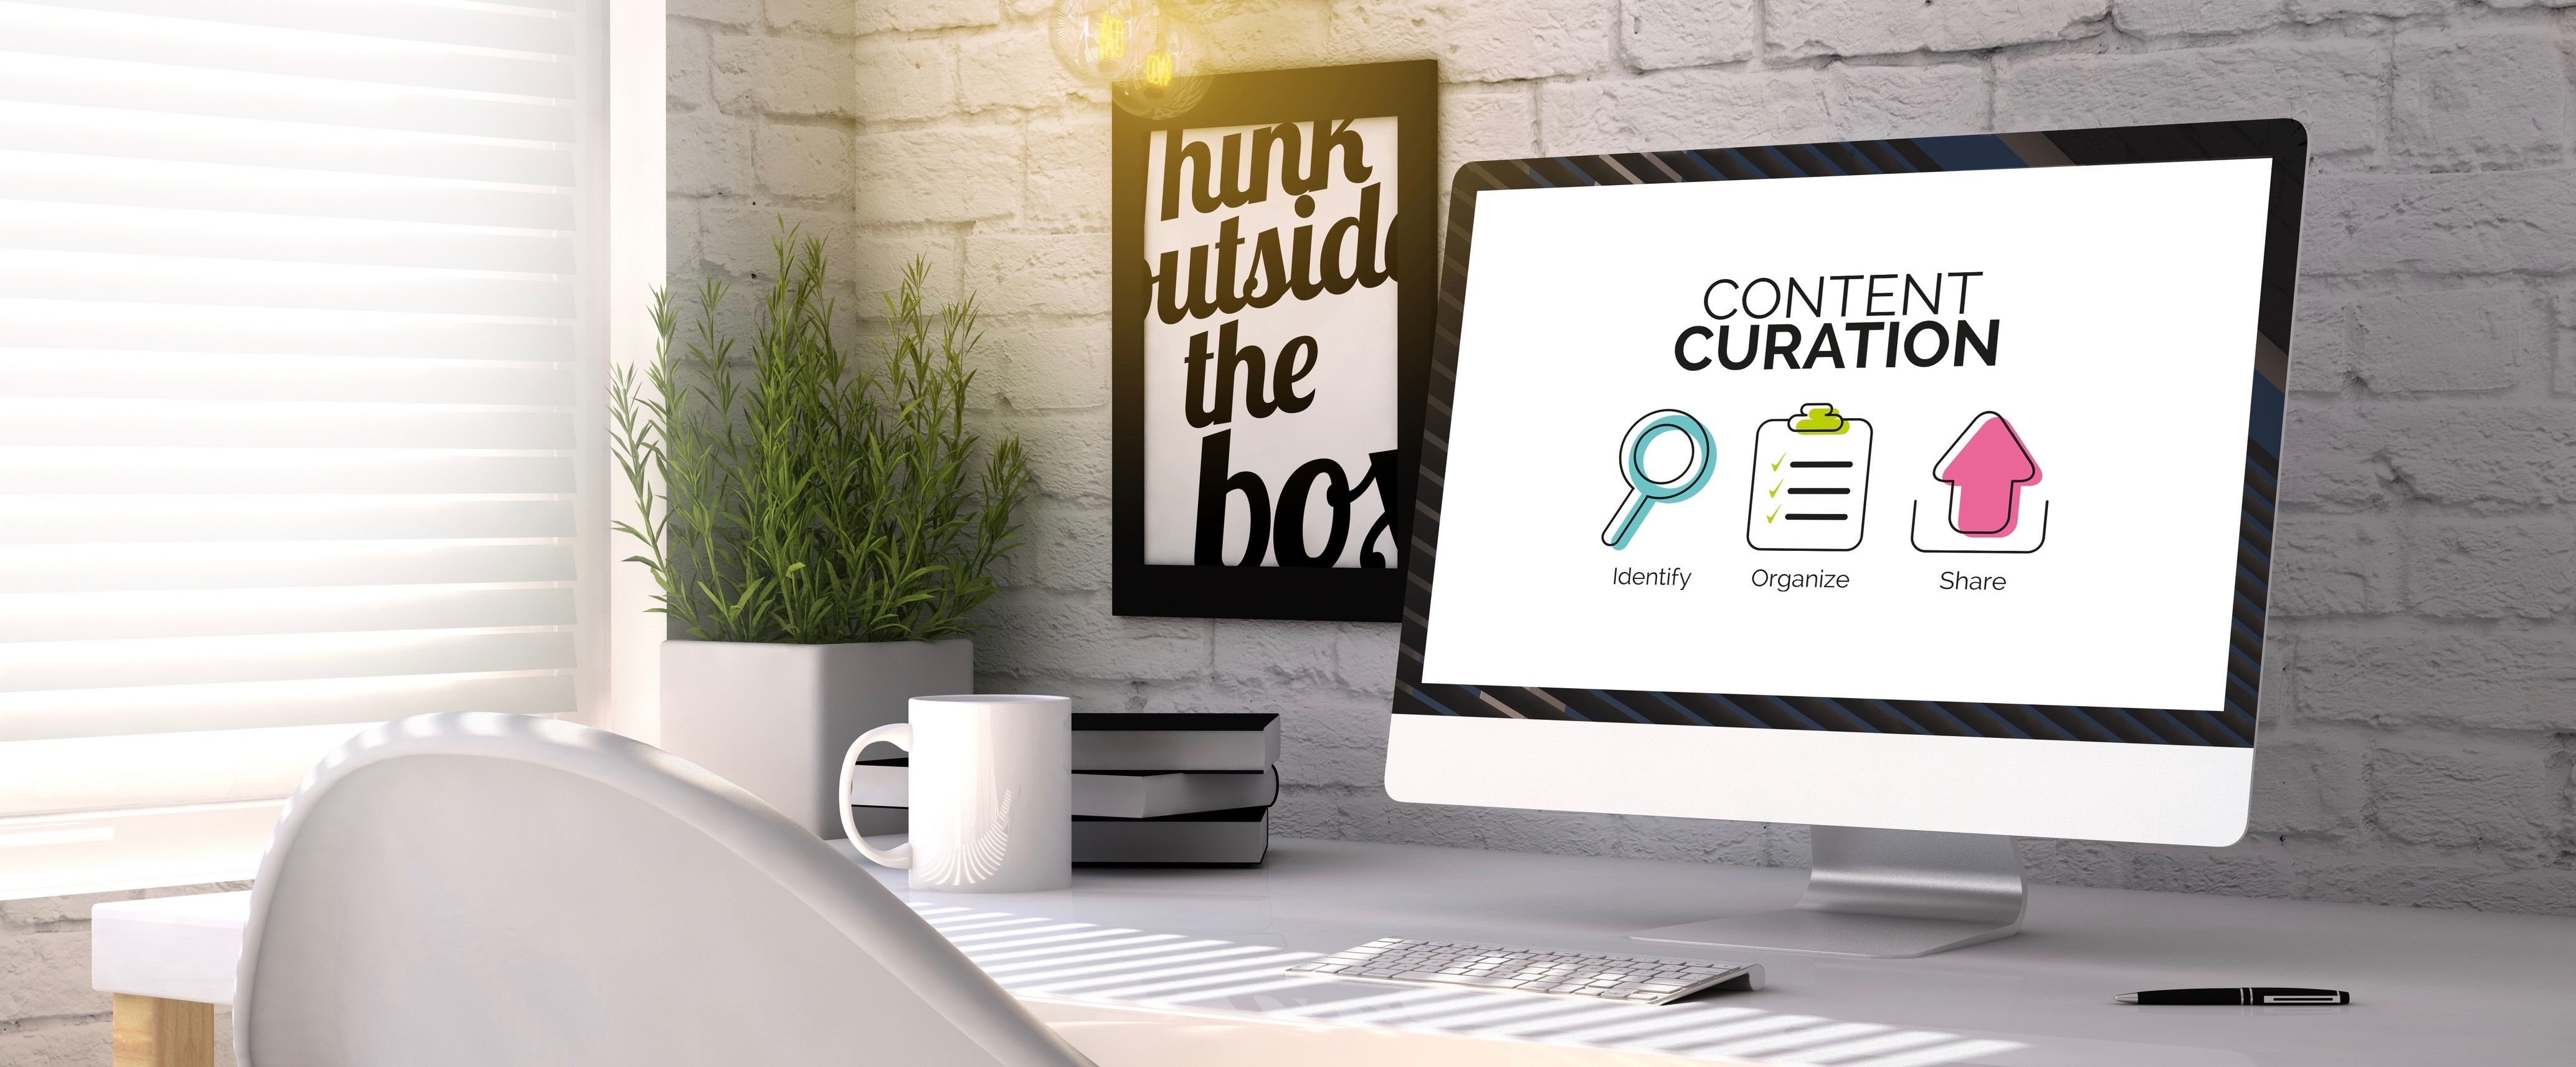 13 Content Curation Tools Every Marketer Needs